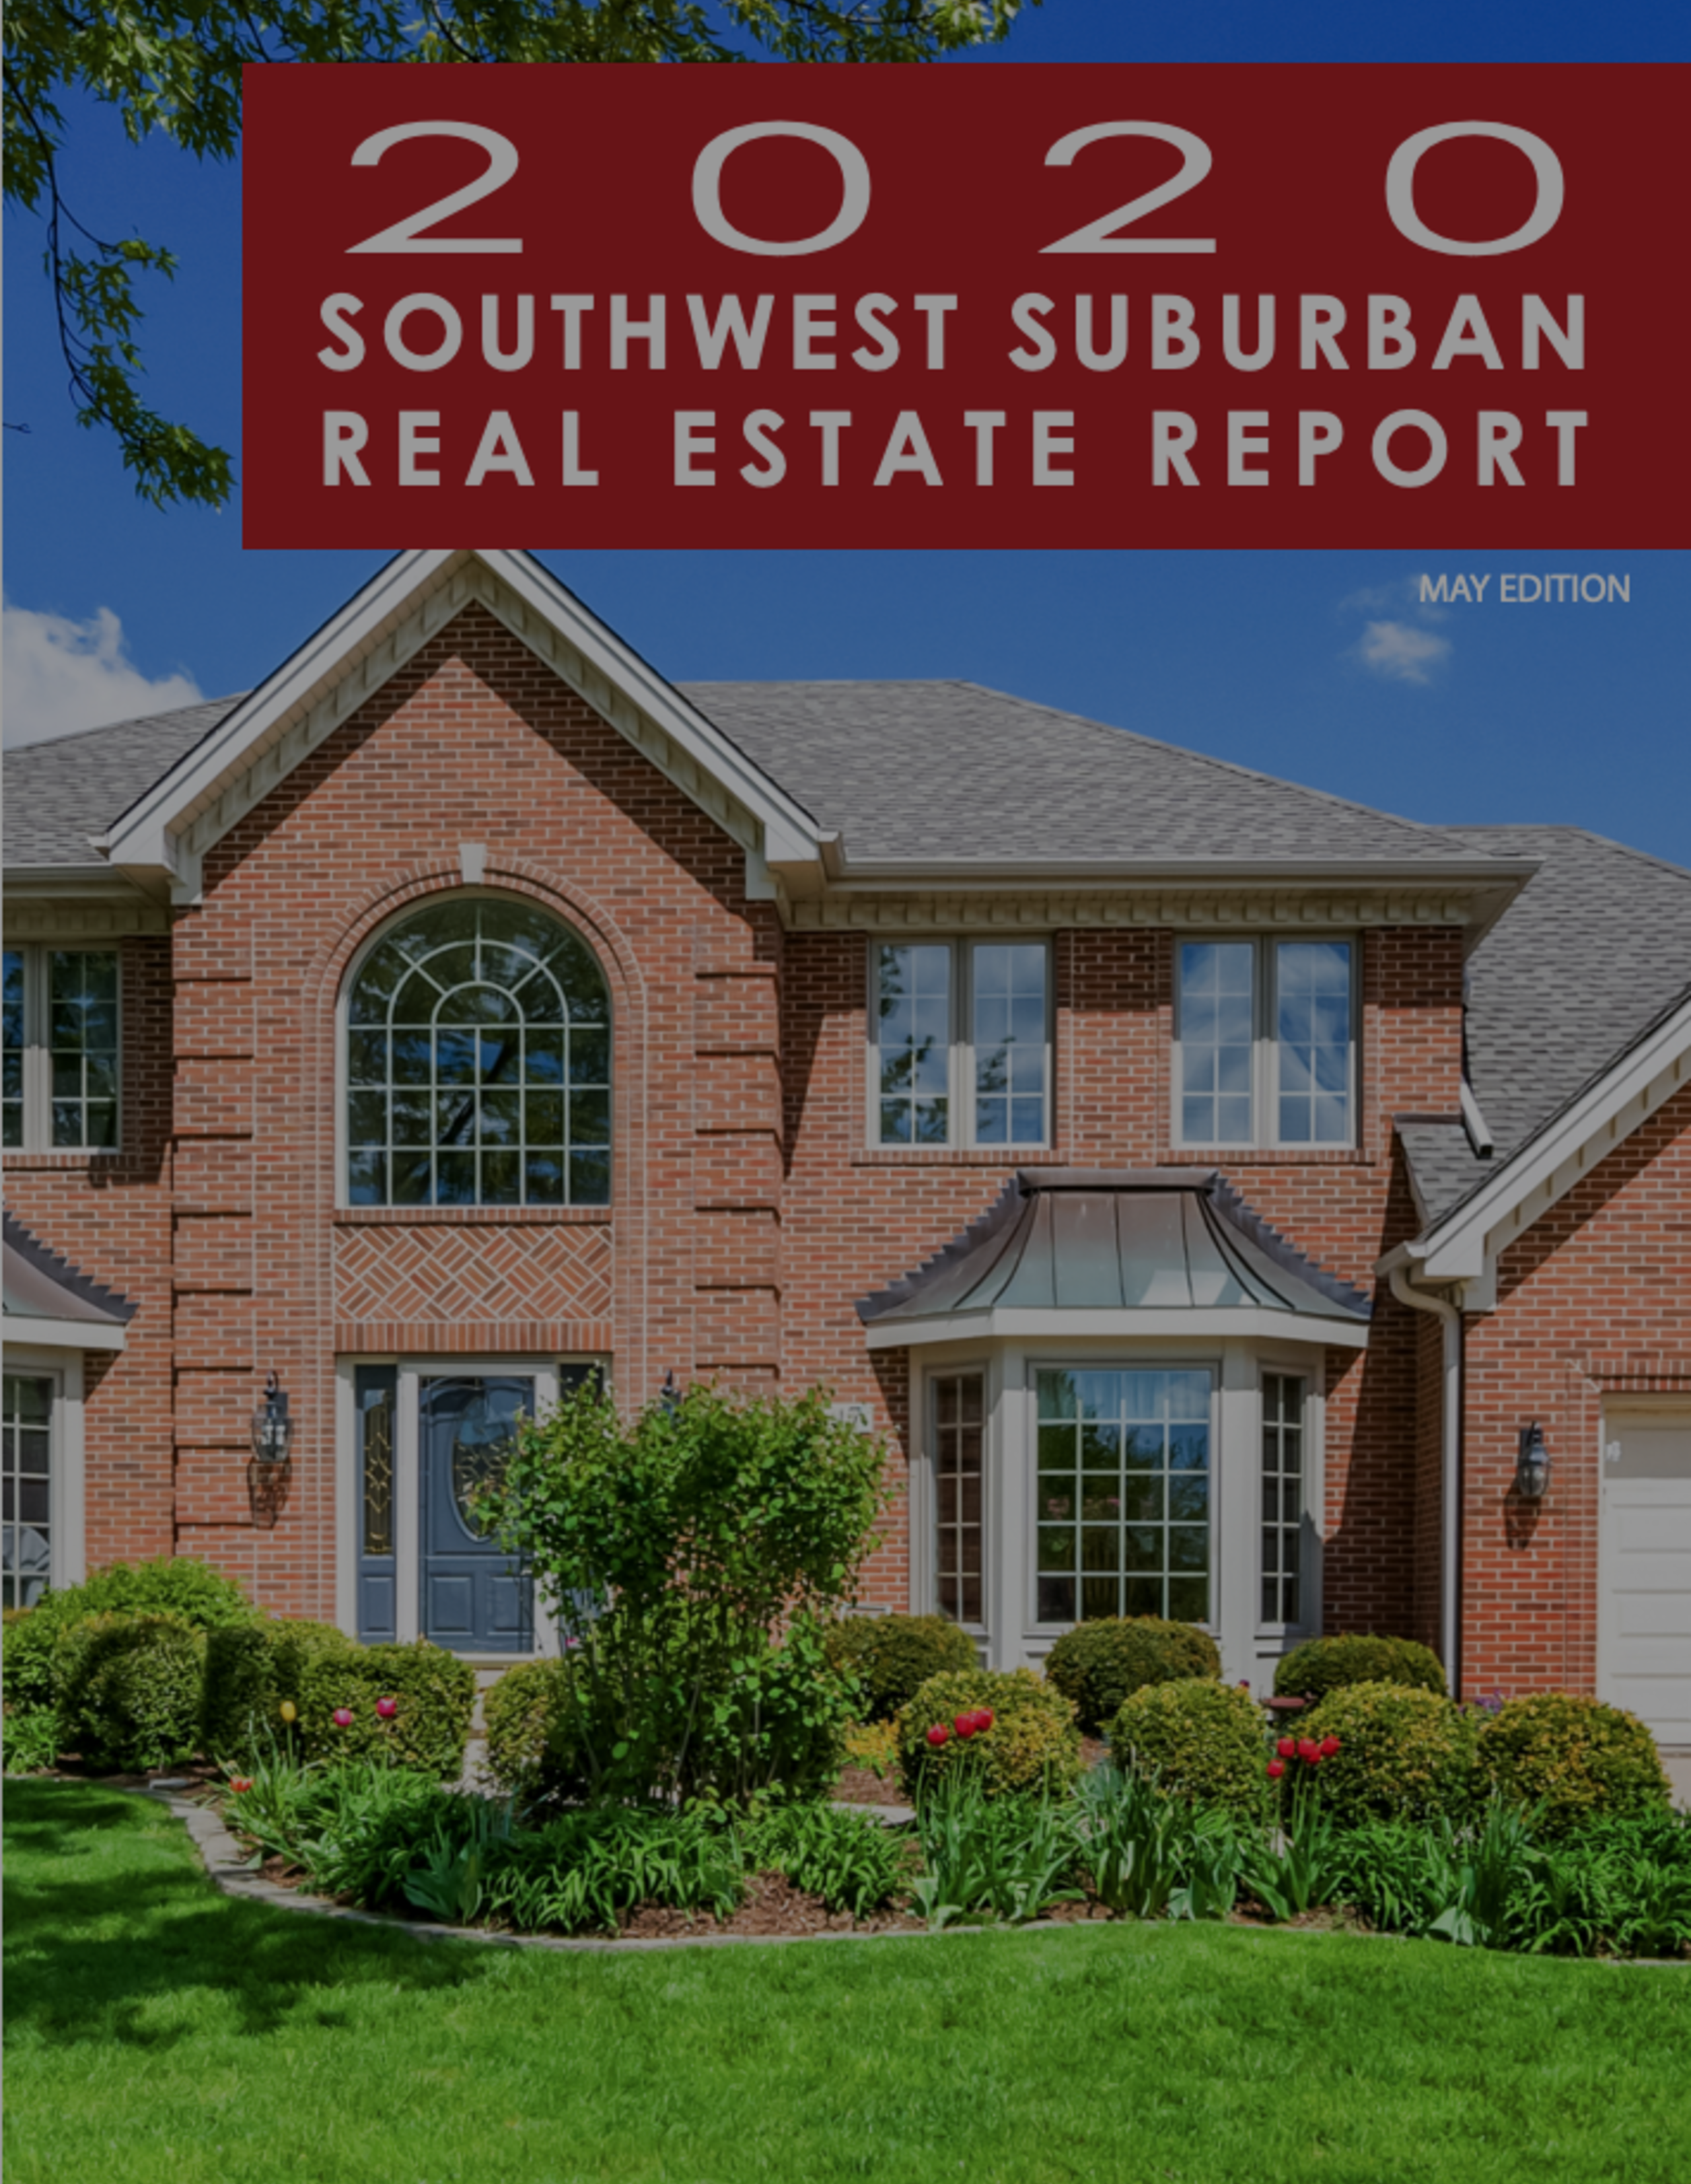 Orland Park and Tinley Park IL Real Estate Market Update May 2020